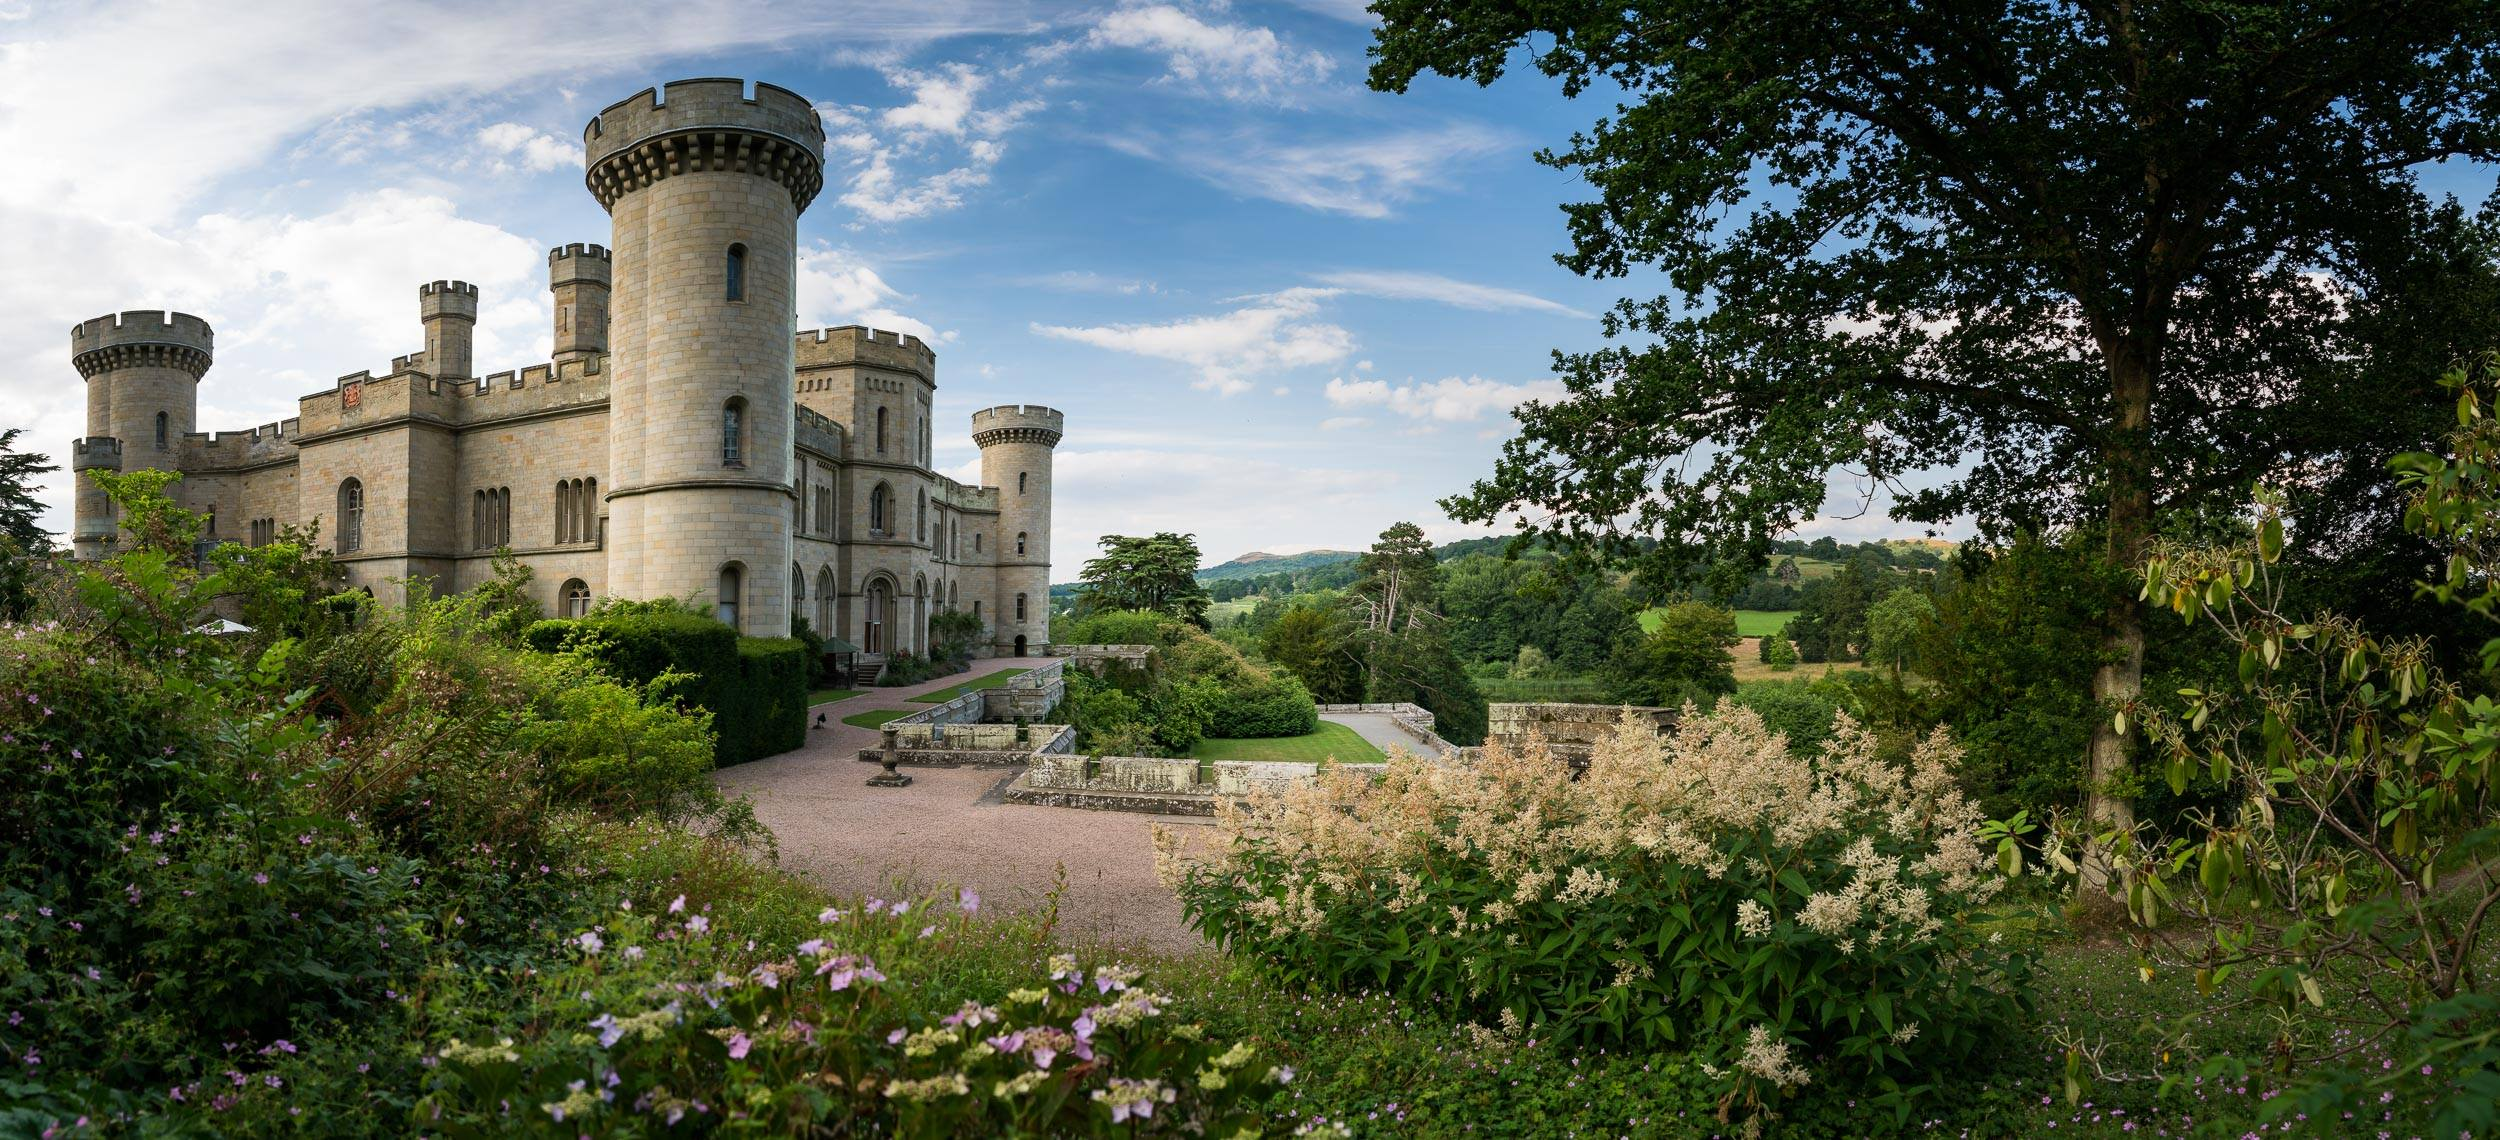 Inflatable Fun at Eastnor Castle